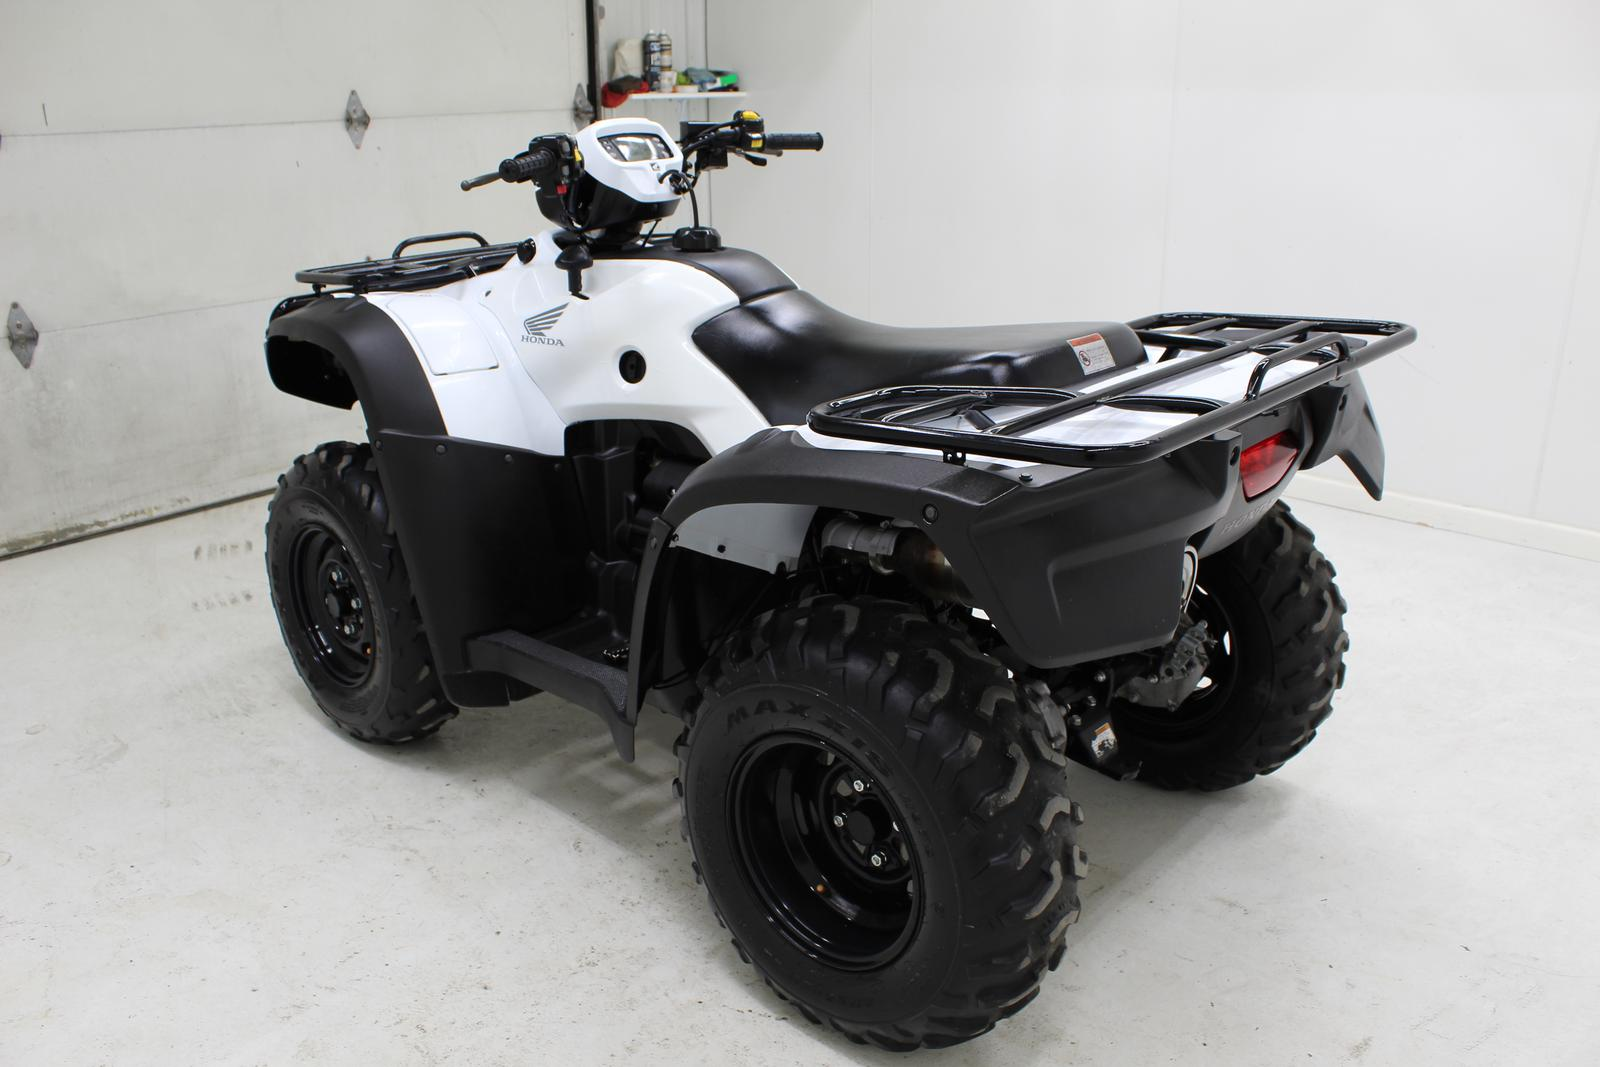 2014 Honda Rubicon 500 4x4 Auto For Sale In Paducah Ky Chase Fuel Filter Img 7894